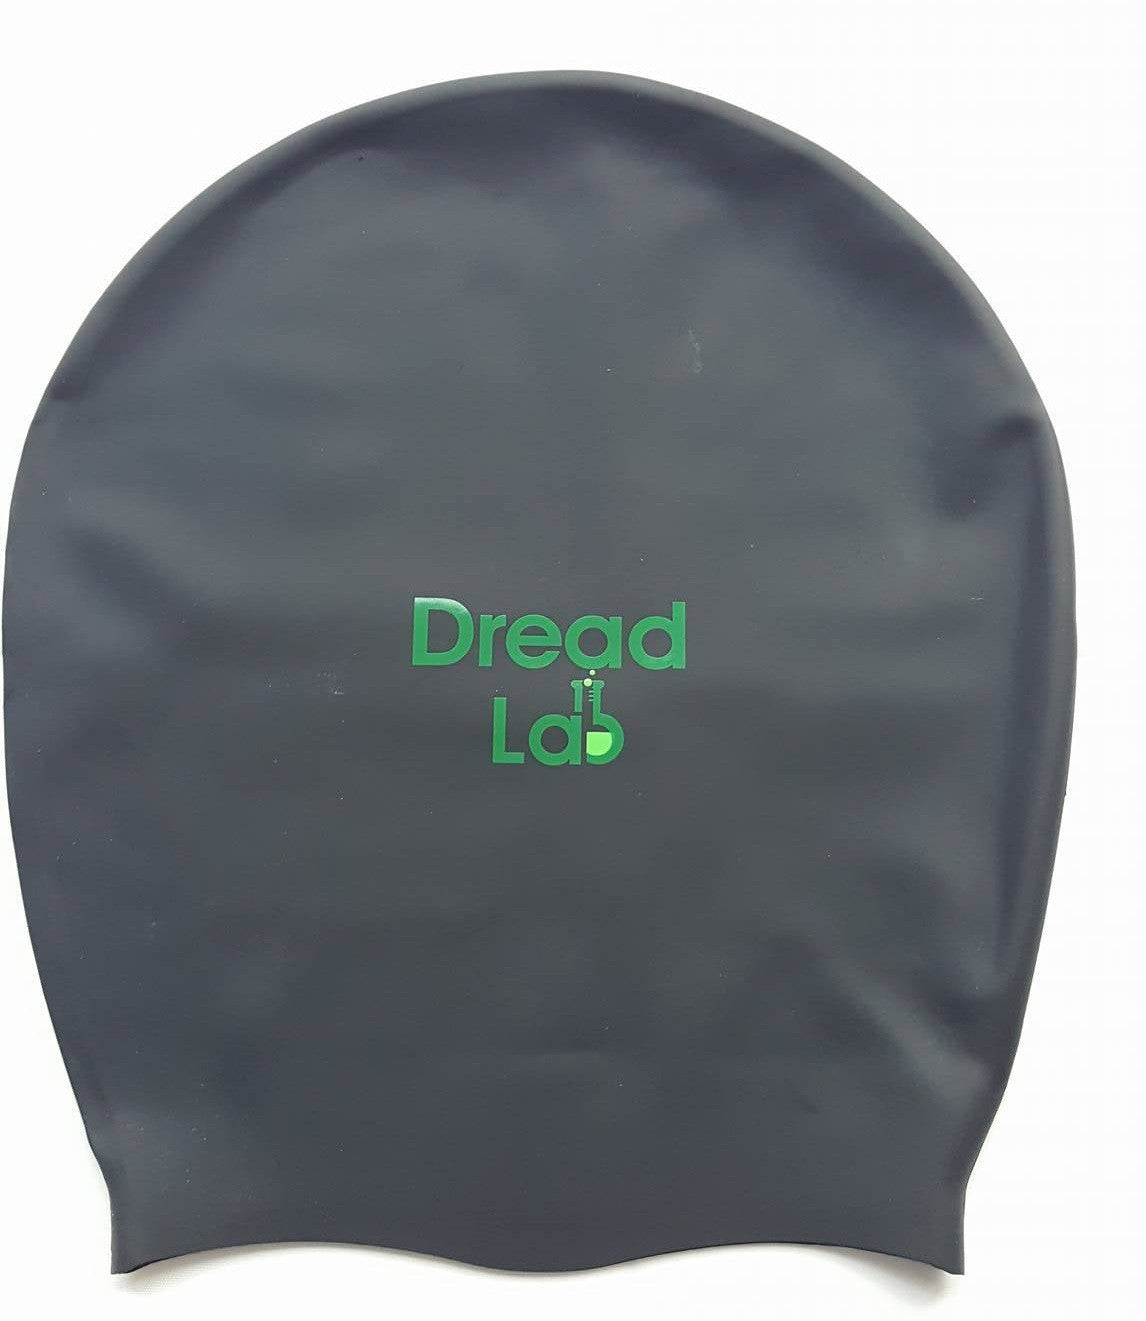 DreadLab Extra Large Dreadlocks Swim Cap